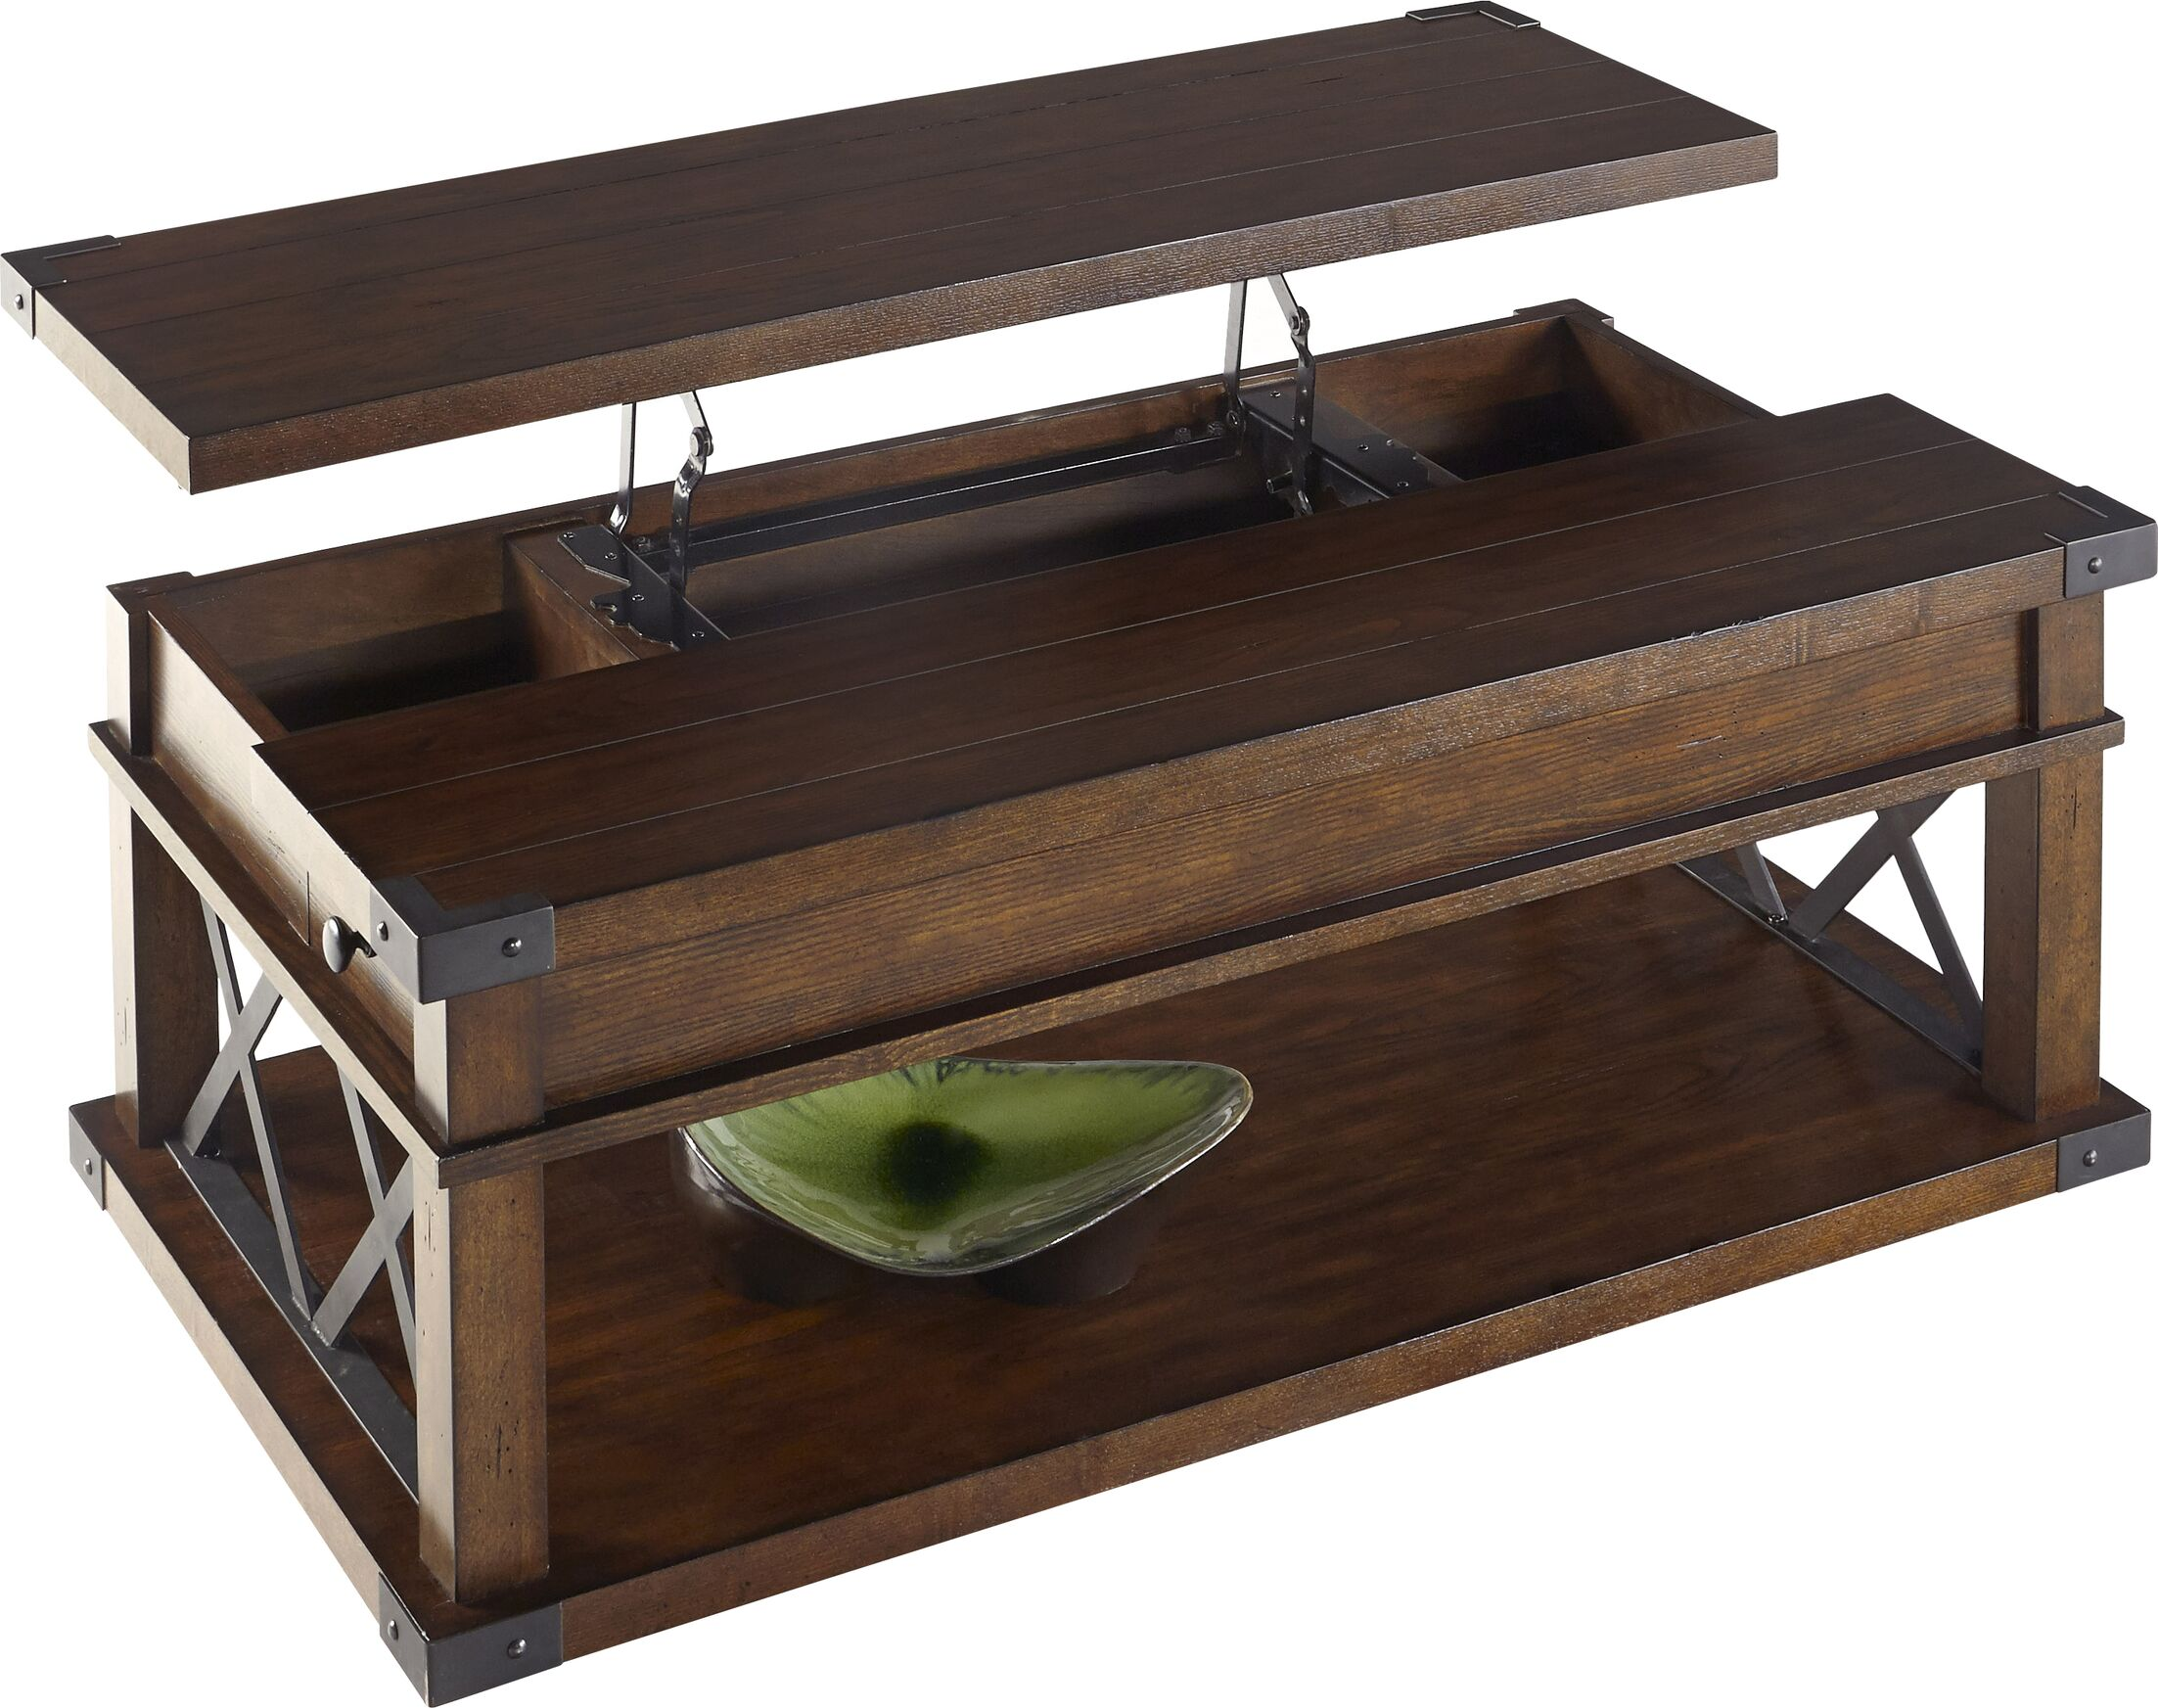 Fusillade Lift Top Coffee Table